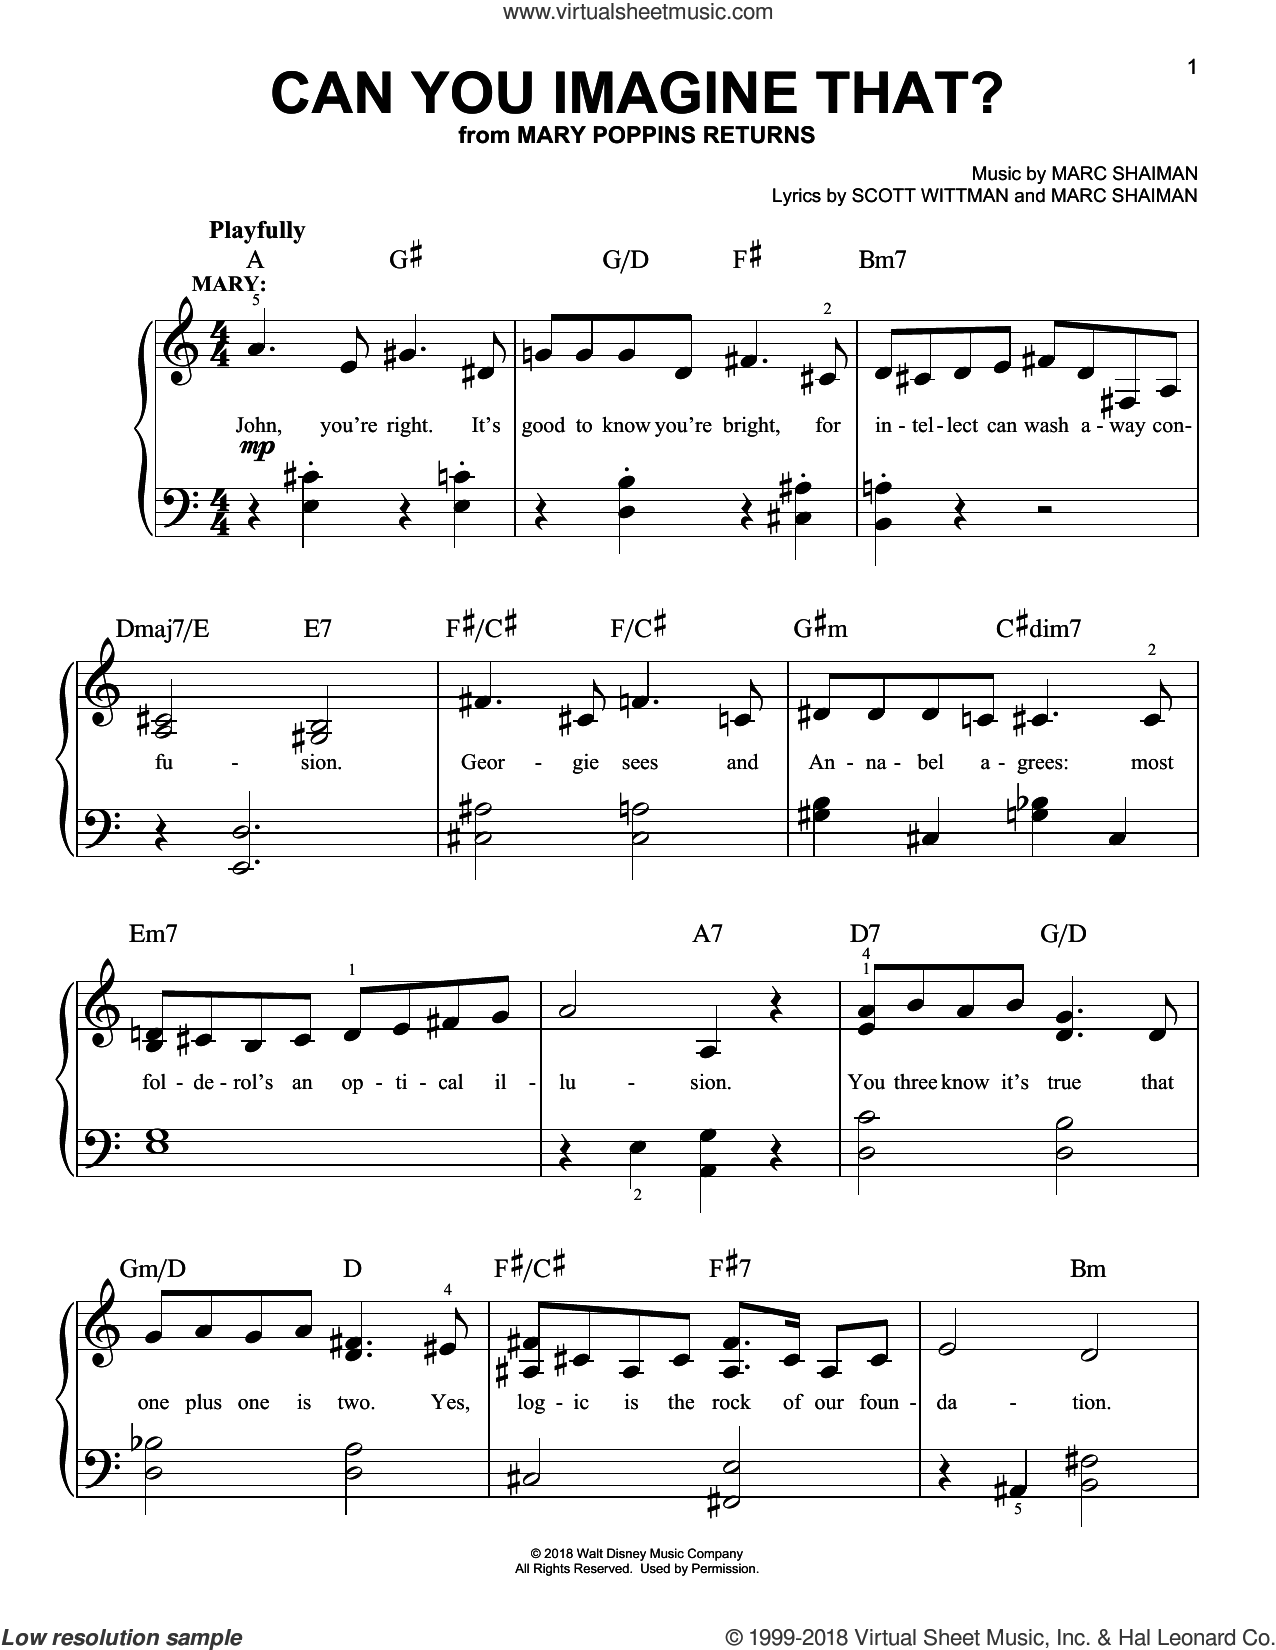 Can You Imagine That? (from Mary Poppins Returns) sheet music for piano solo by Emily Blunt & Company, Marc Shaiman and Scott Wittman, easy skill level